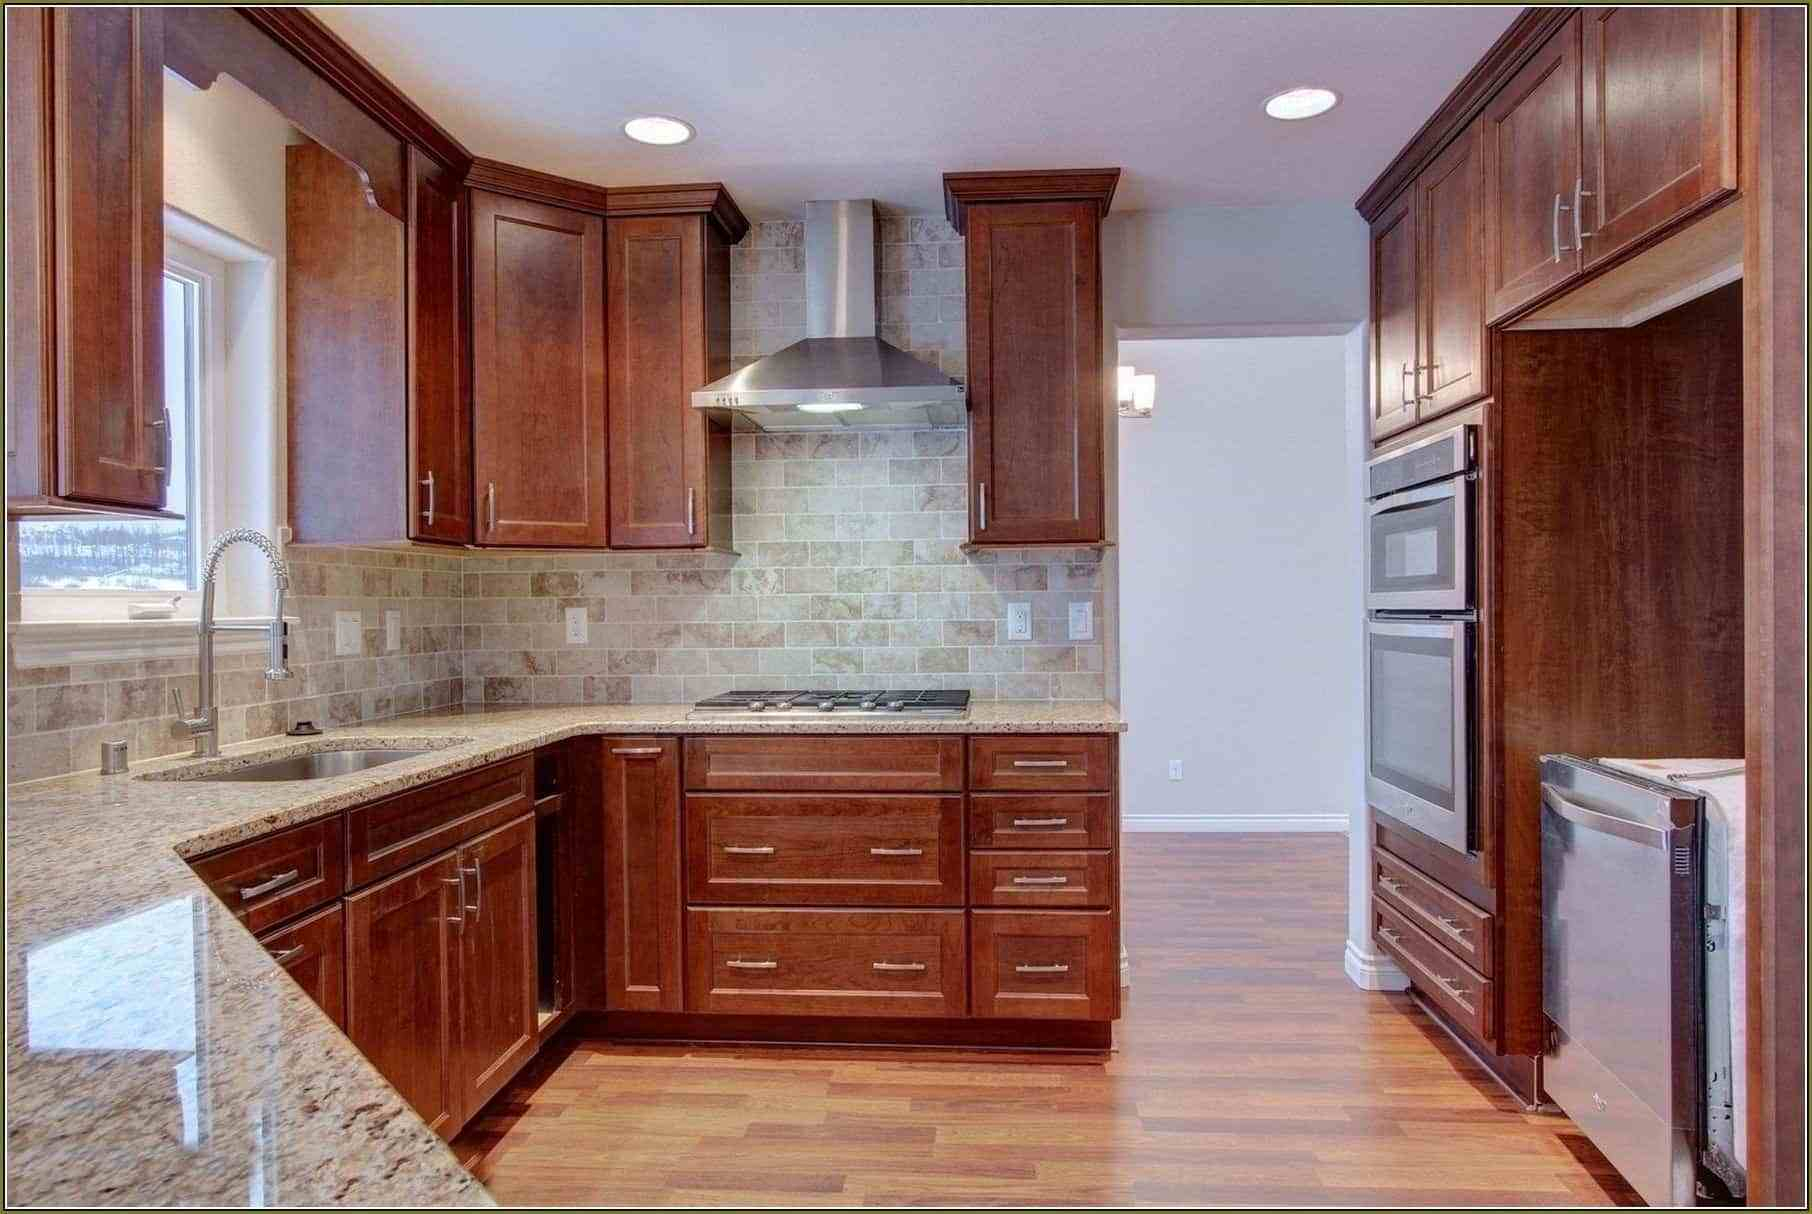 10 Unique Crown Molding Ideas For Kitchen crown molding for kitchen cabinets transforming home how to add 2021